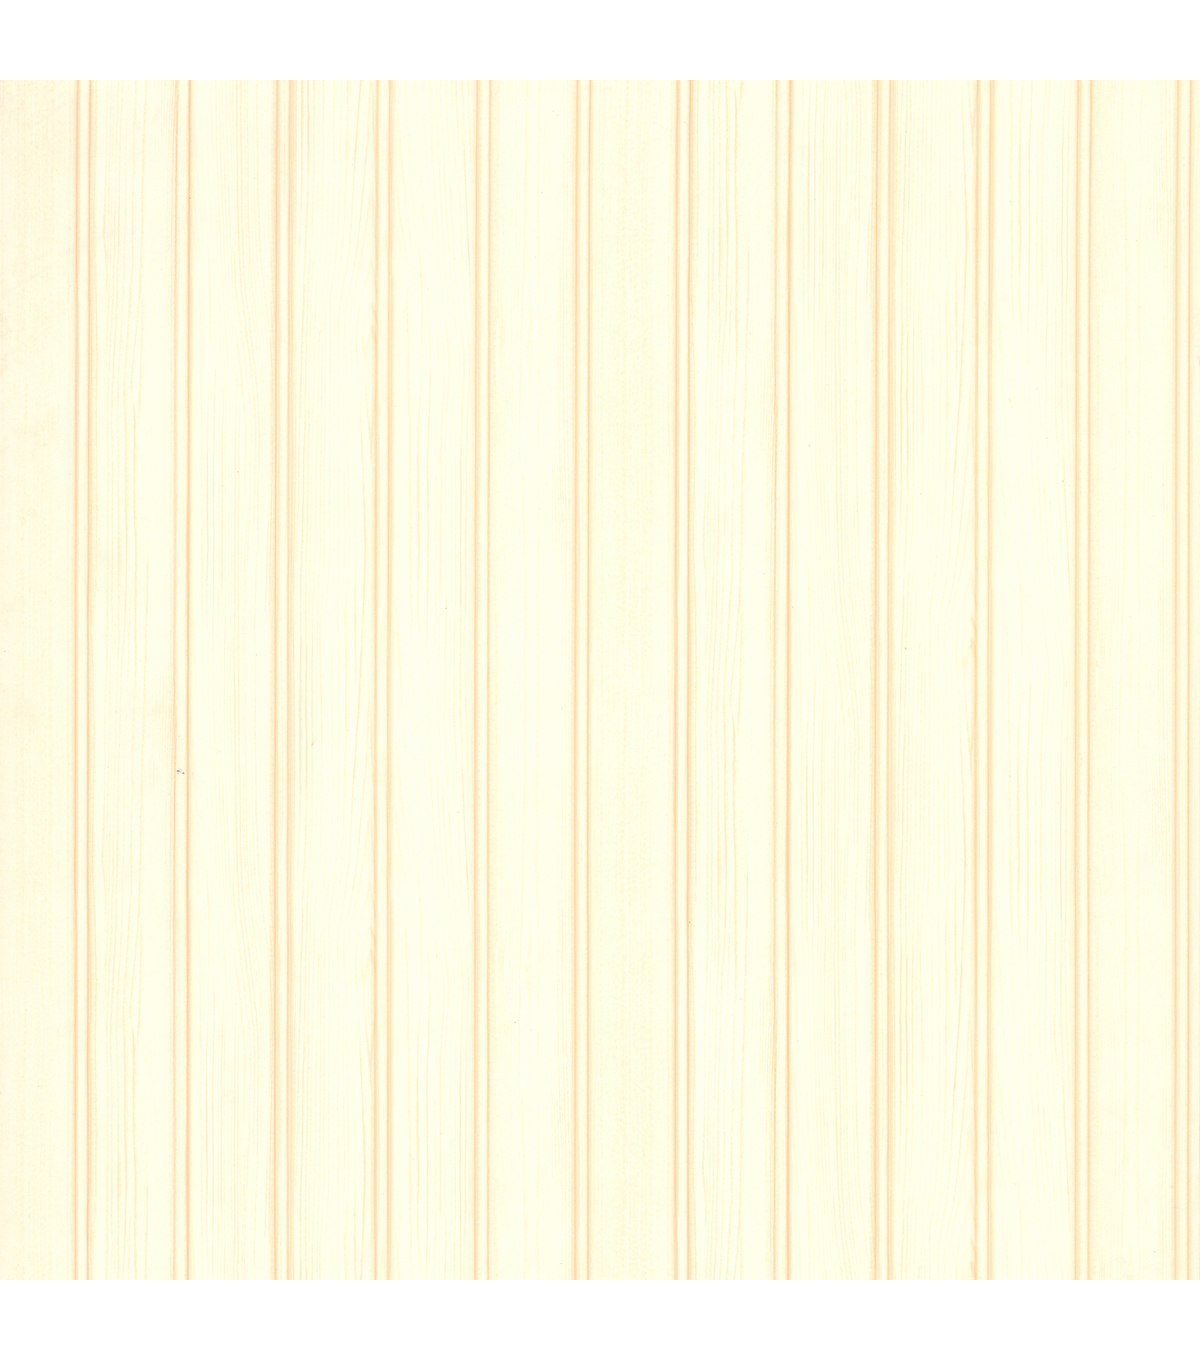 Silva Cream Wood Panelling Wallpaper Sample